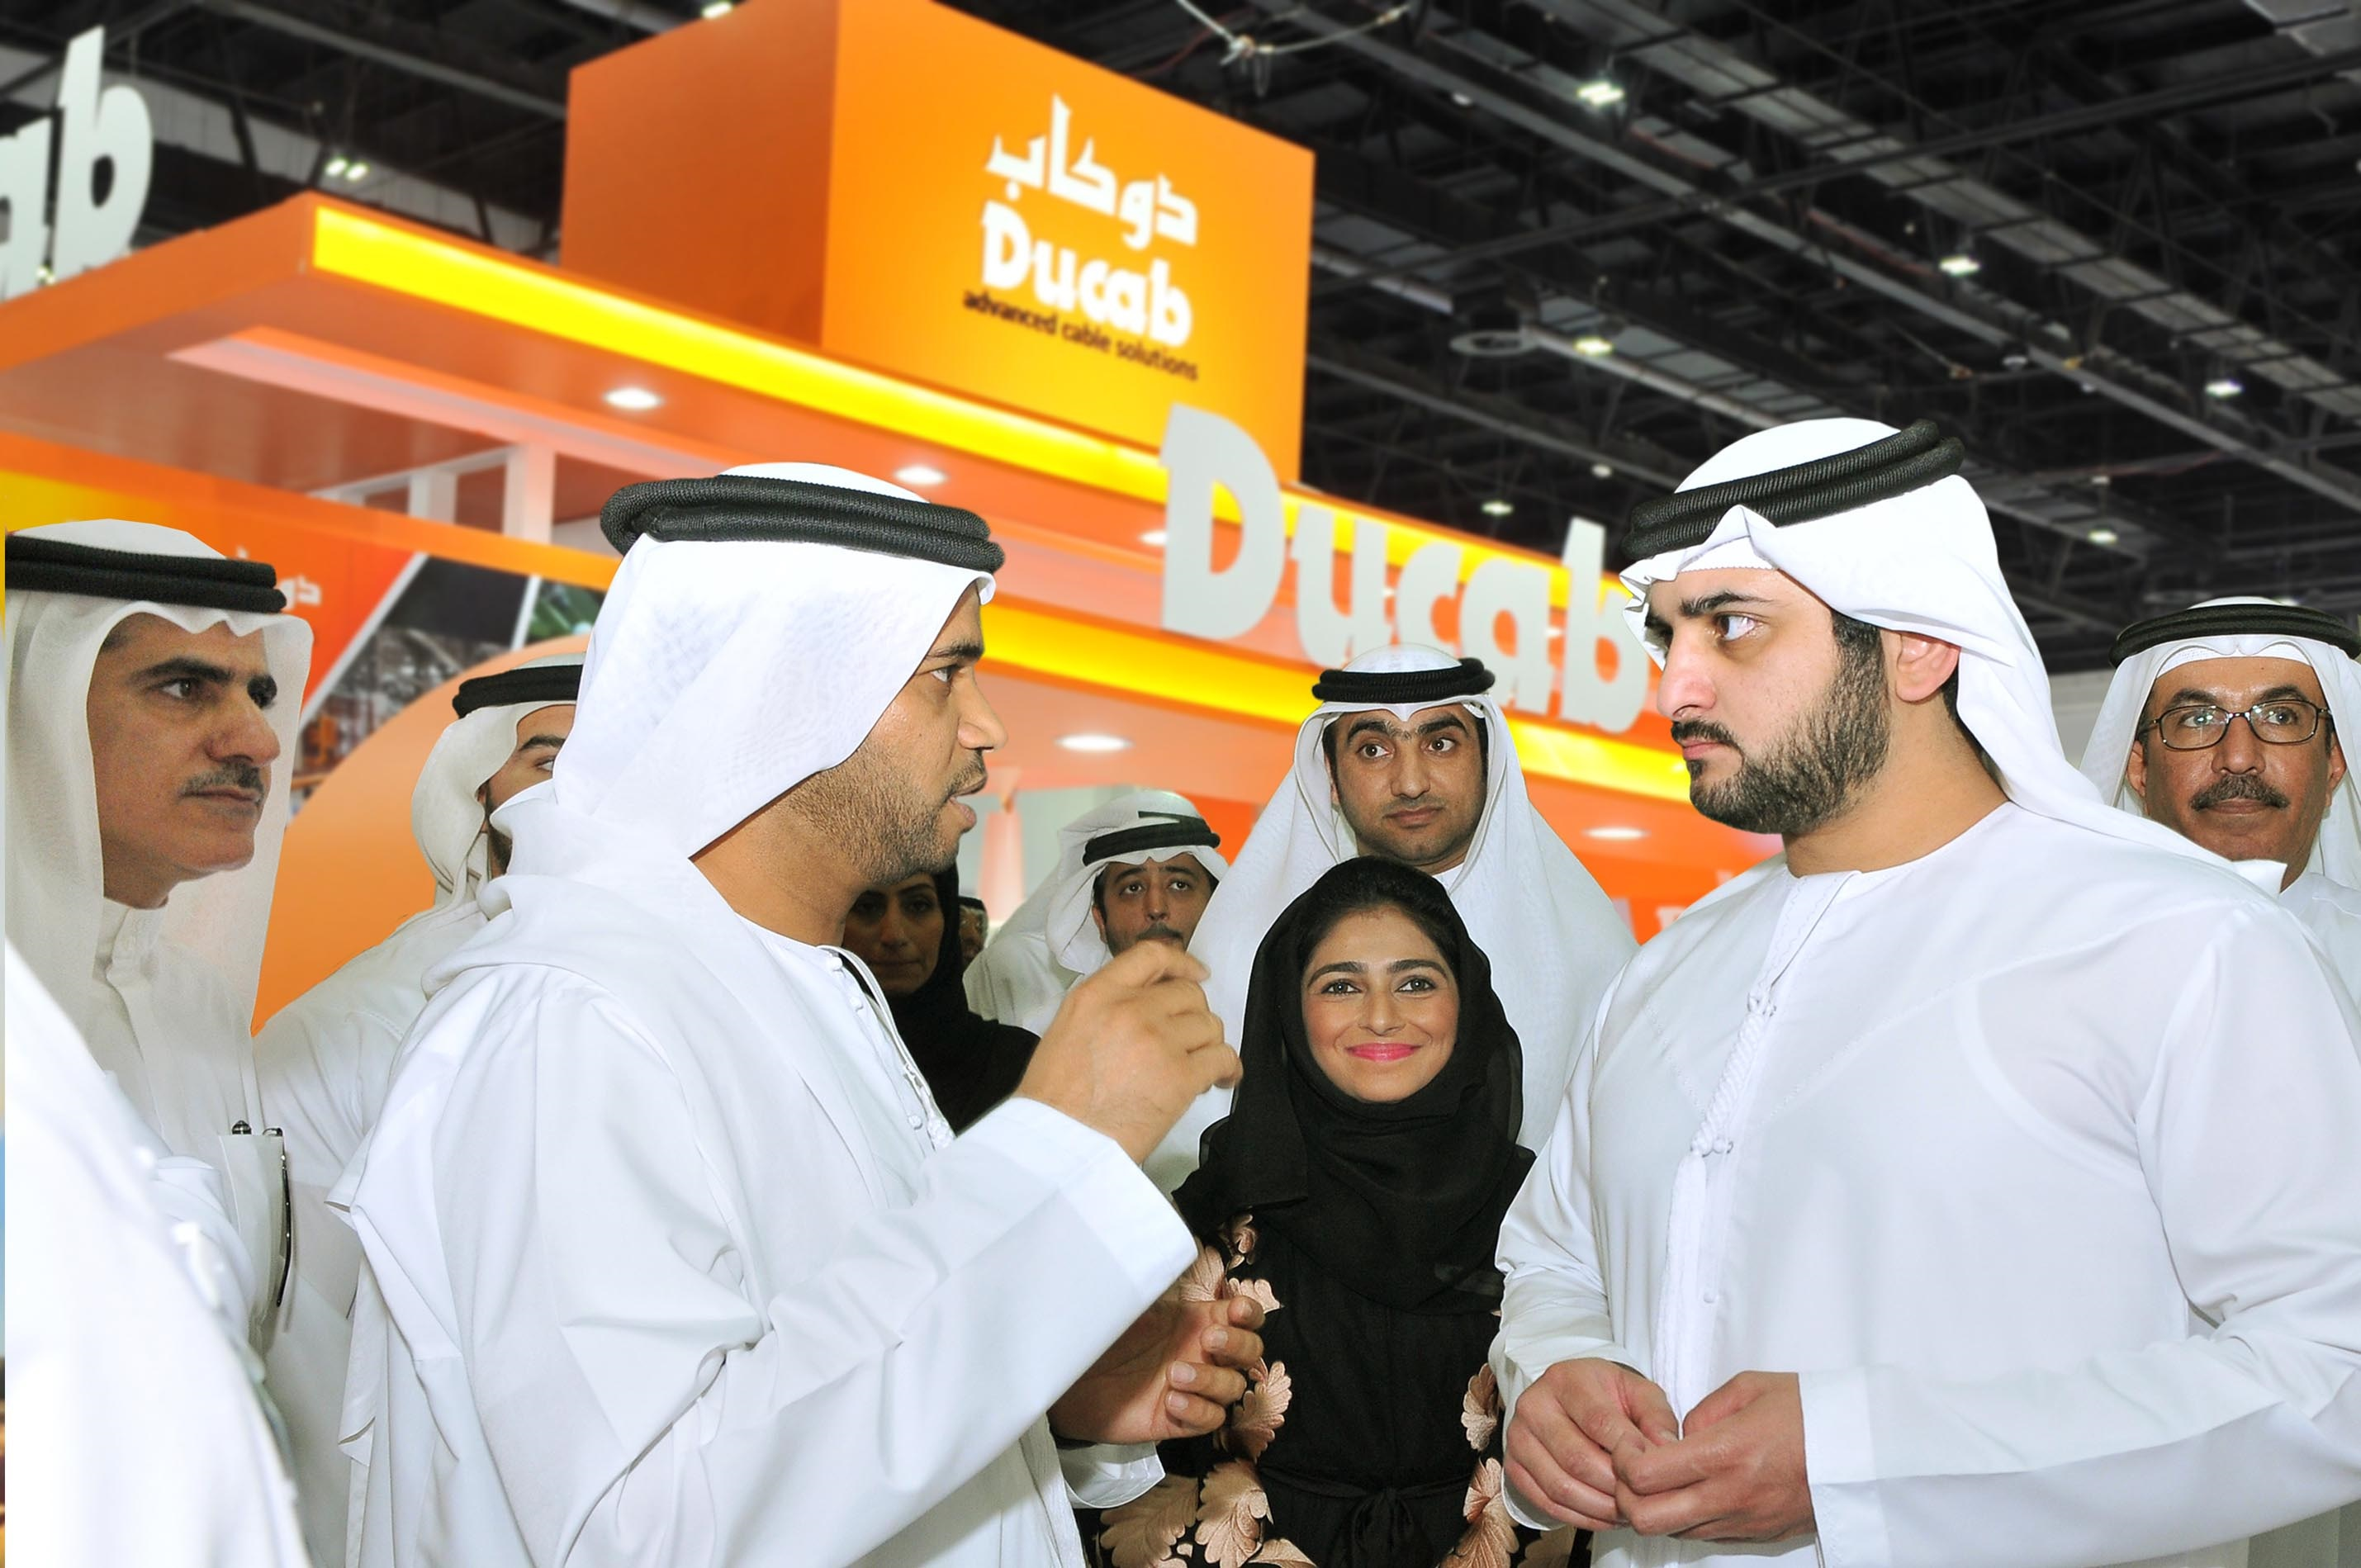 Ducab reaches out to UAE National talent at Careers UAE 2014